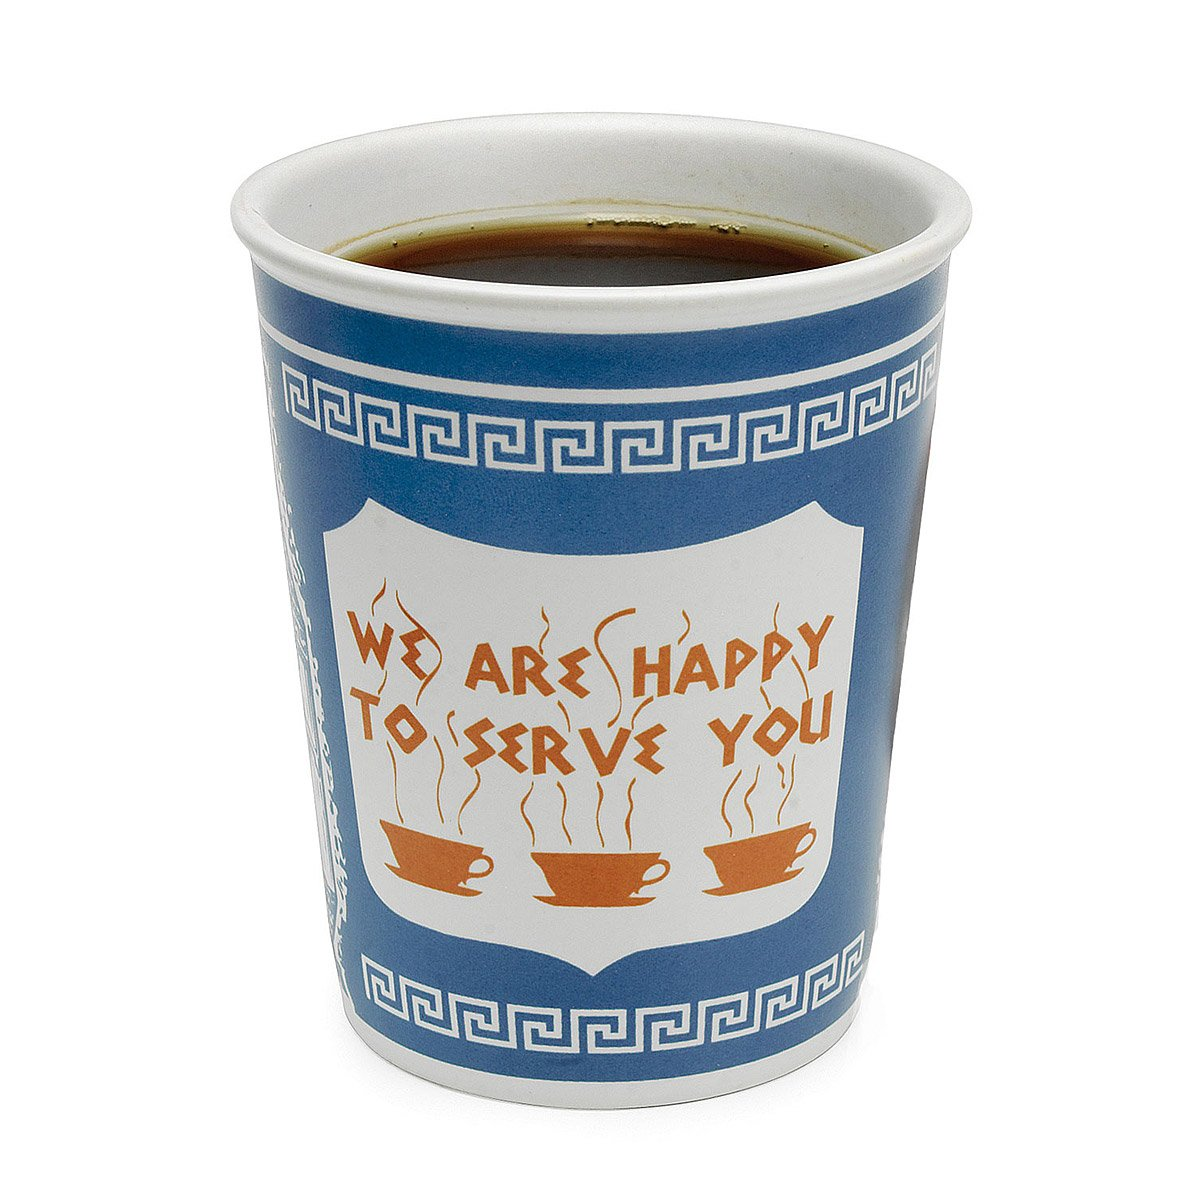 stylish design ideas unique coffee cups. Ceramic Greek Coffee Cup  We Are Happy To Serve You Diner Mug